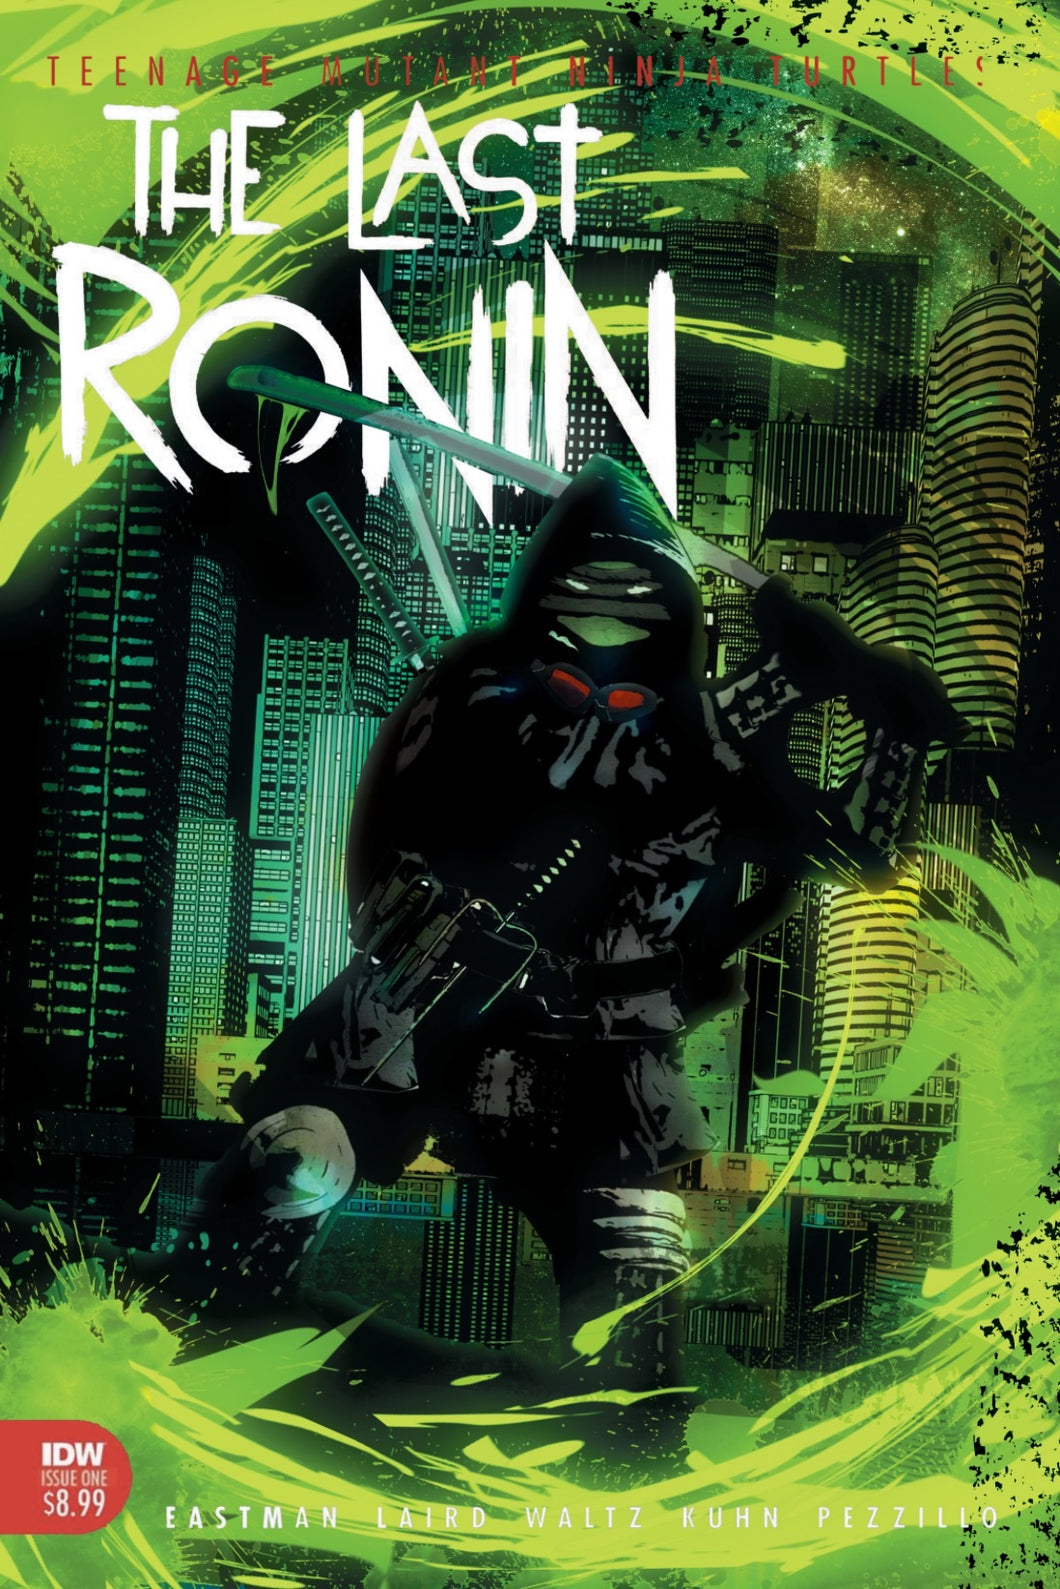 The Last Ronin #1 CGC SS Chris Callahan Remark